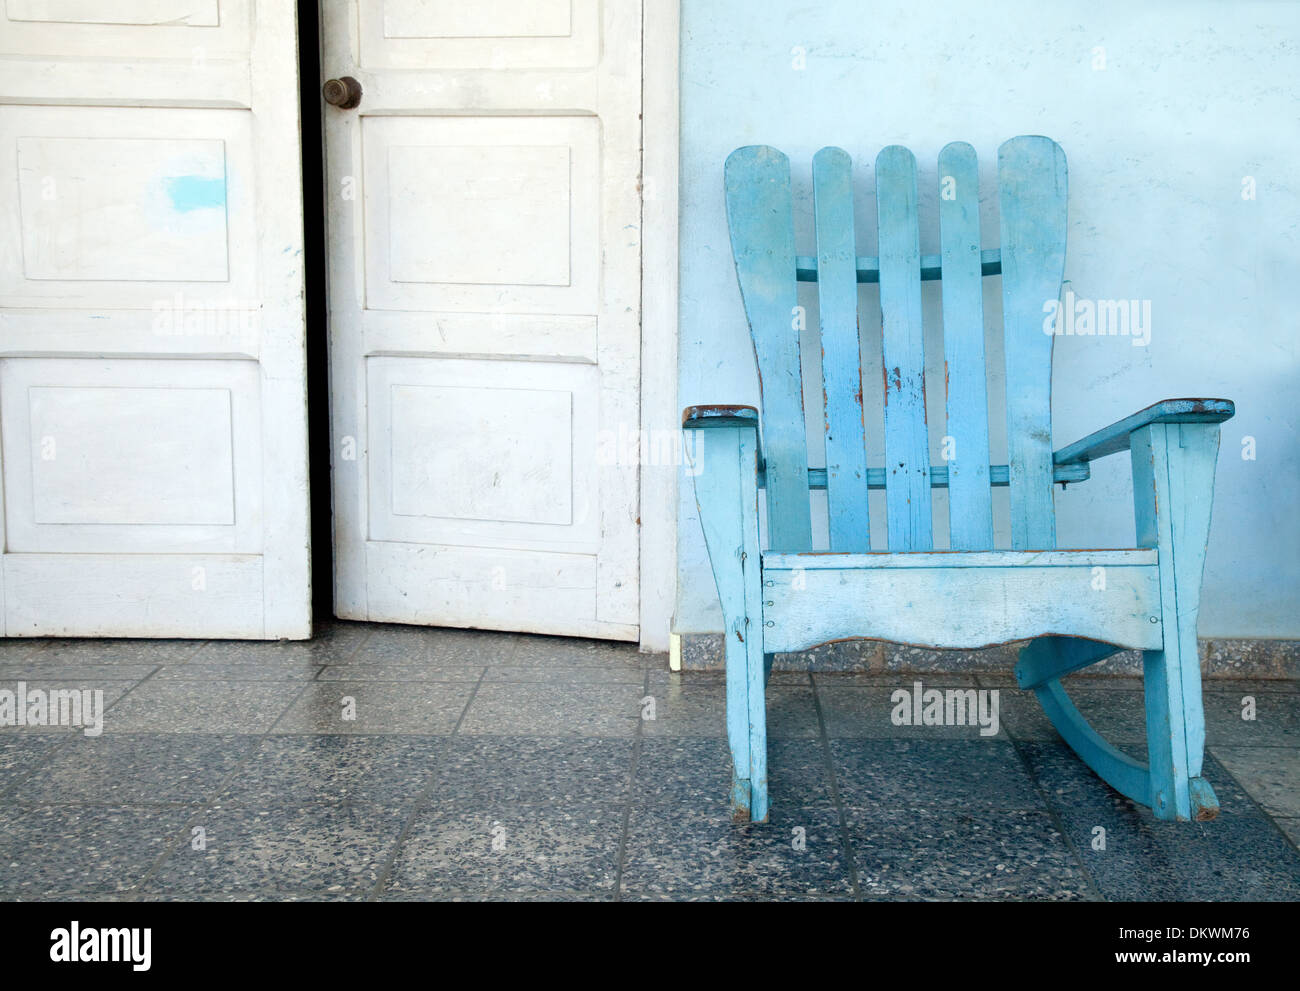 Rocking chair on veranda, Vinales town, Cuba, Caribbean - Stock Image